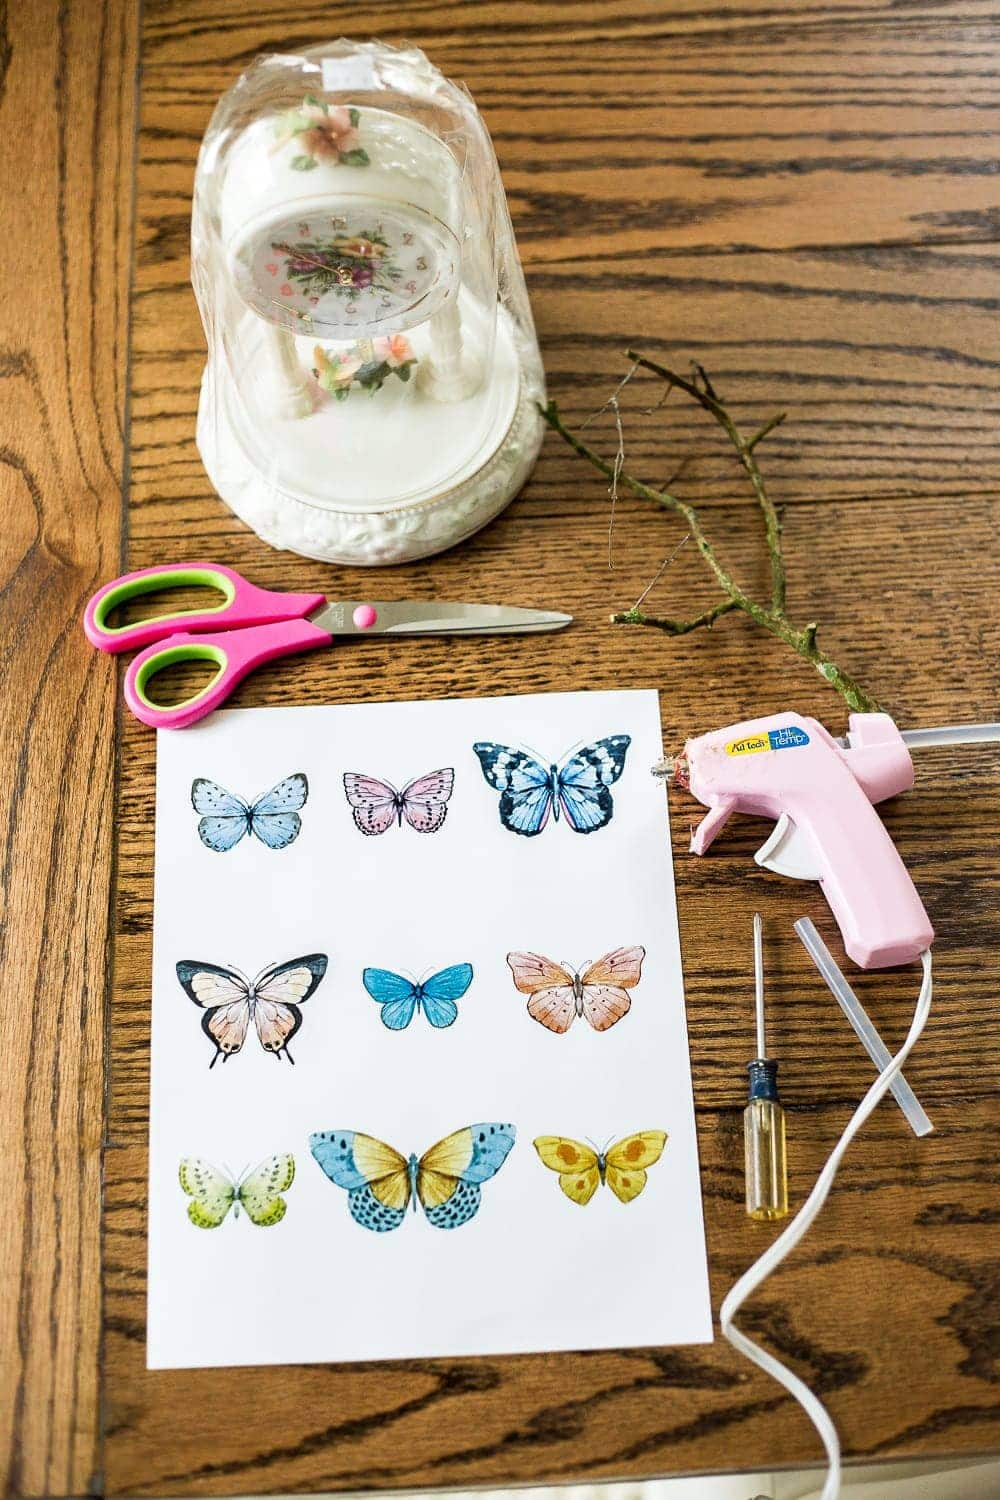 How to turn a cheap, thrifted dome clock into a Victorian style butterfly terrarium cloche with free printables to make your own paper butterflies for spring. #springdecor #thrifteddecor #cloche #springvignette #girlydecor #butterflies